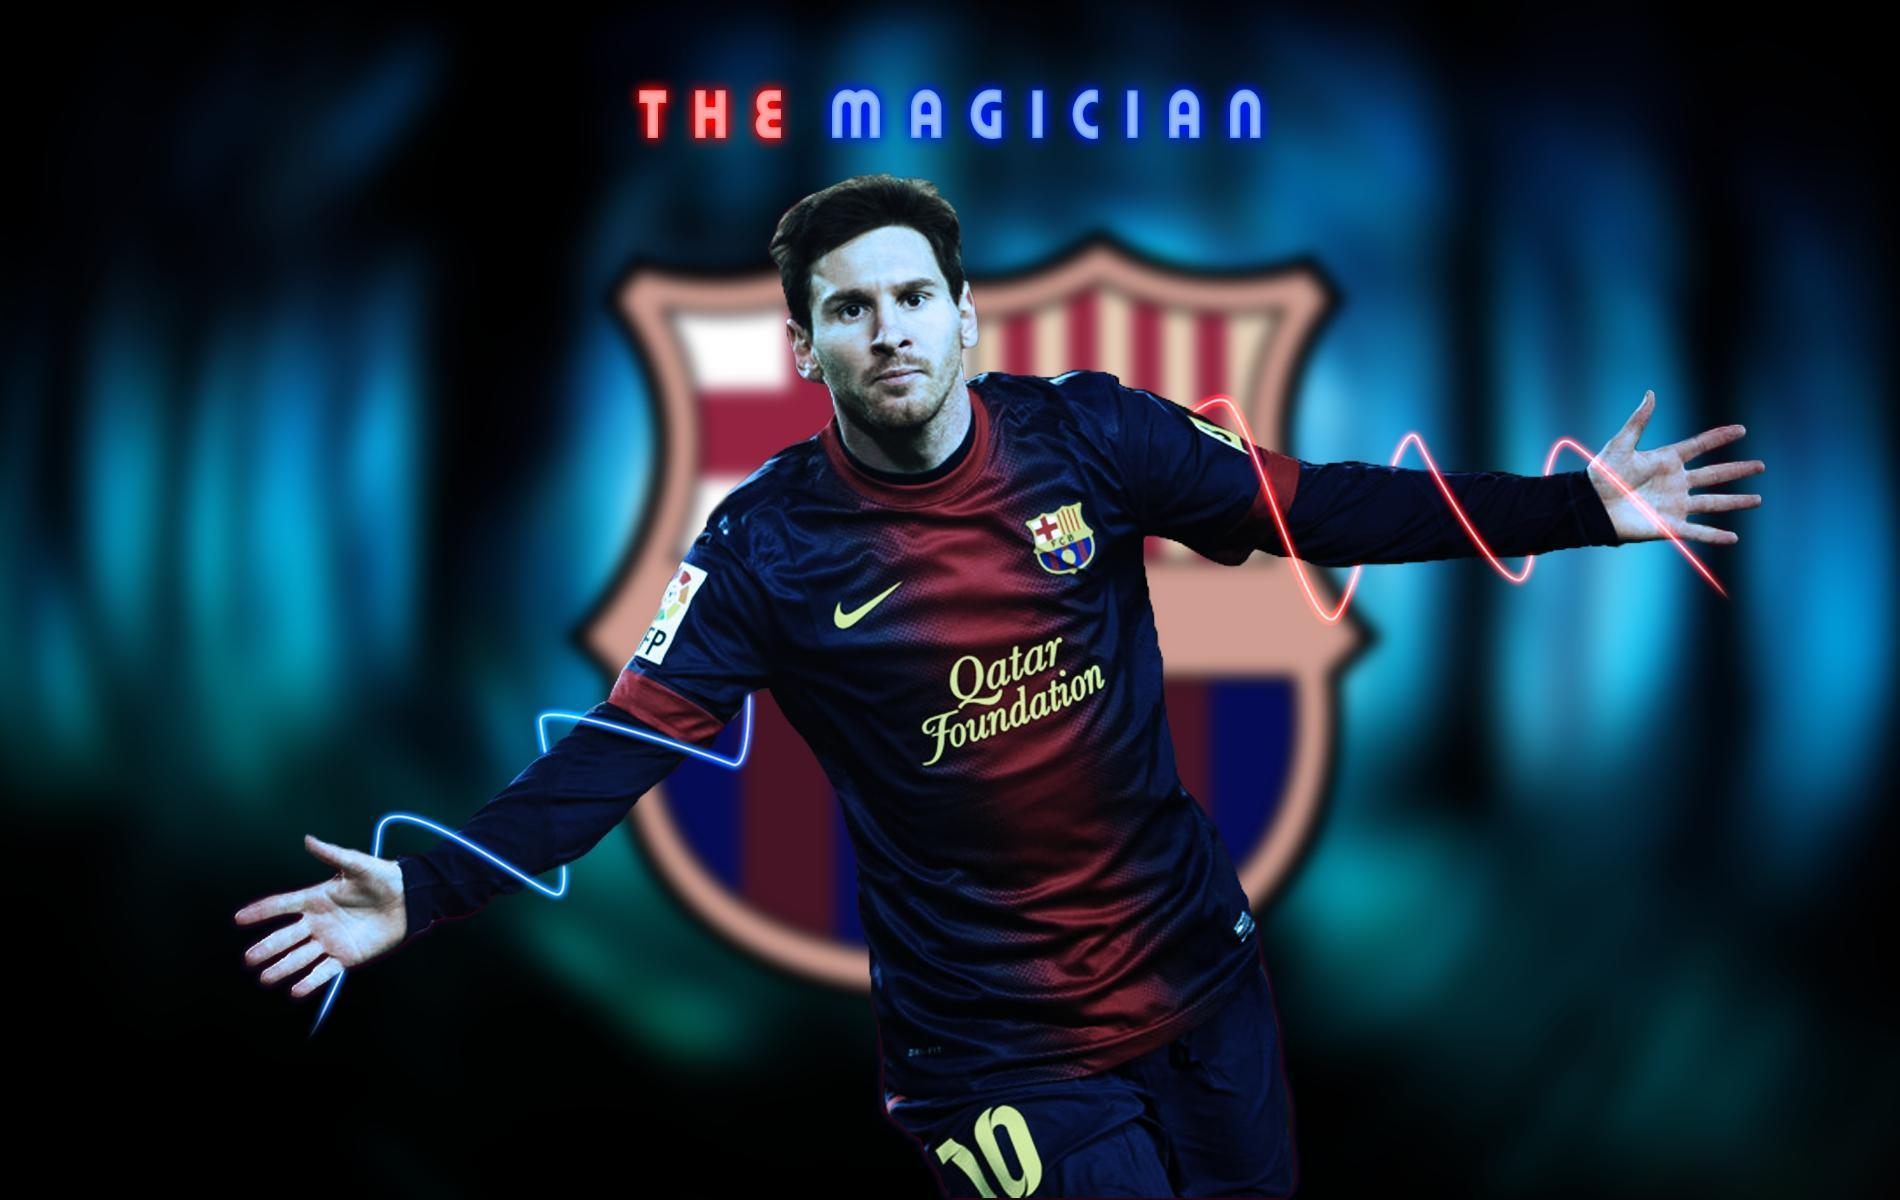 Lionel Messi Wallpapers Hd 2015 Wallpaper Cave